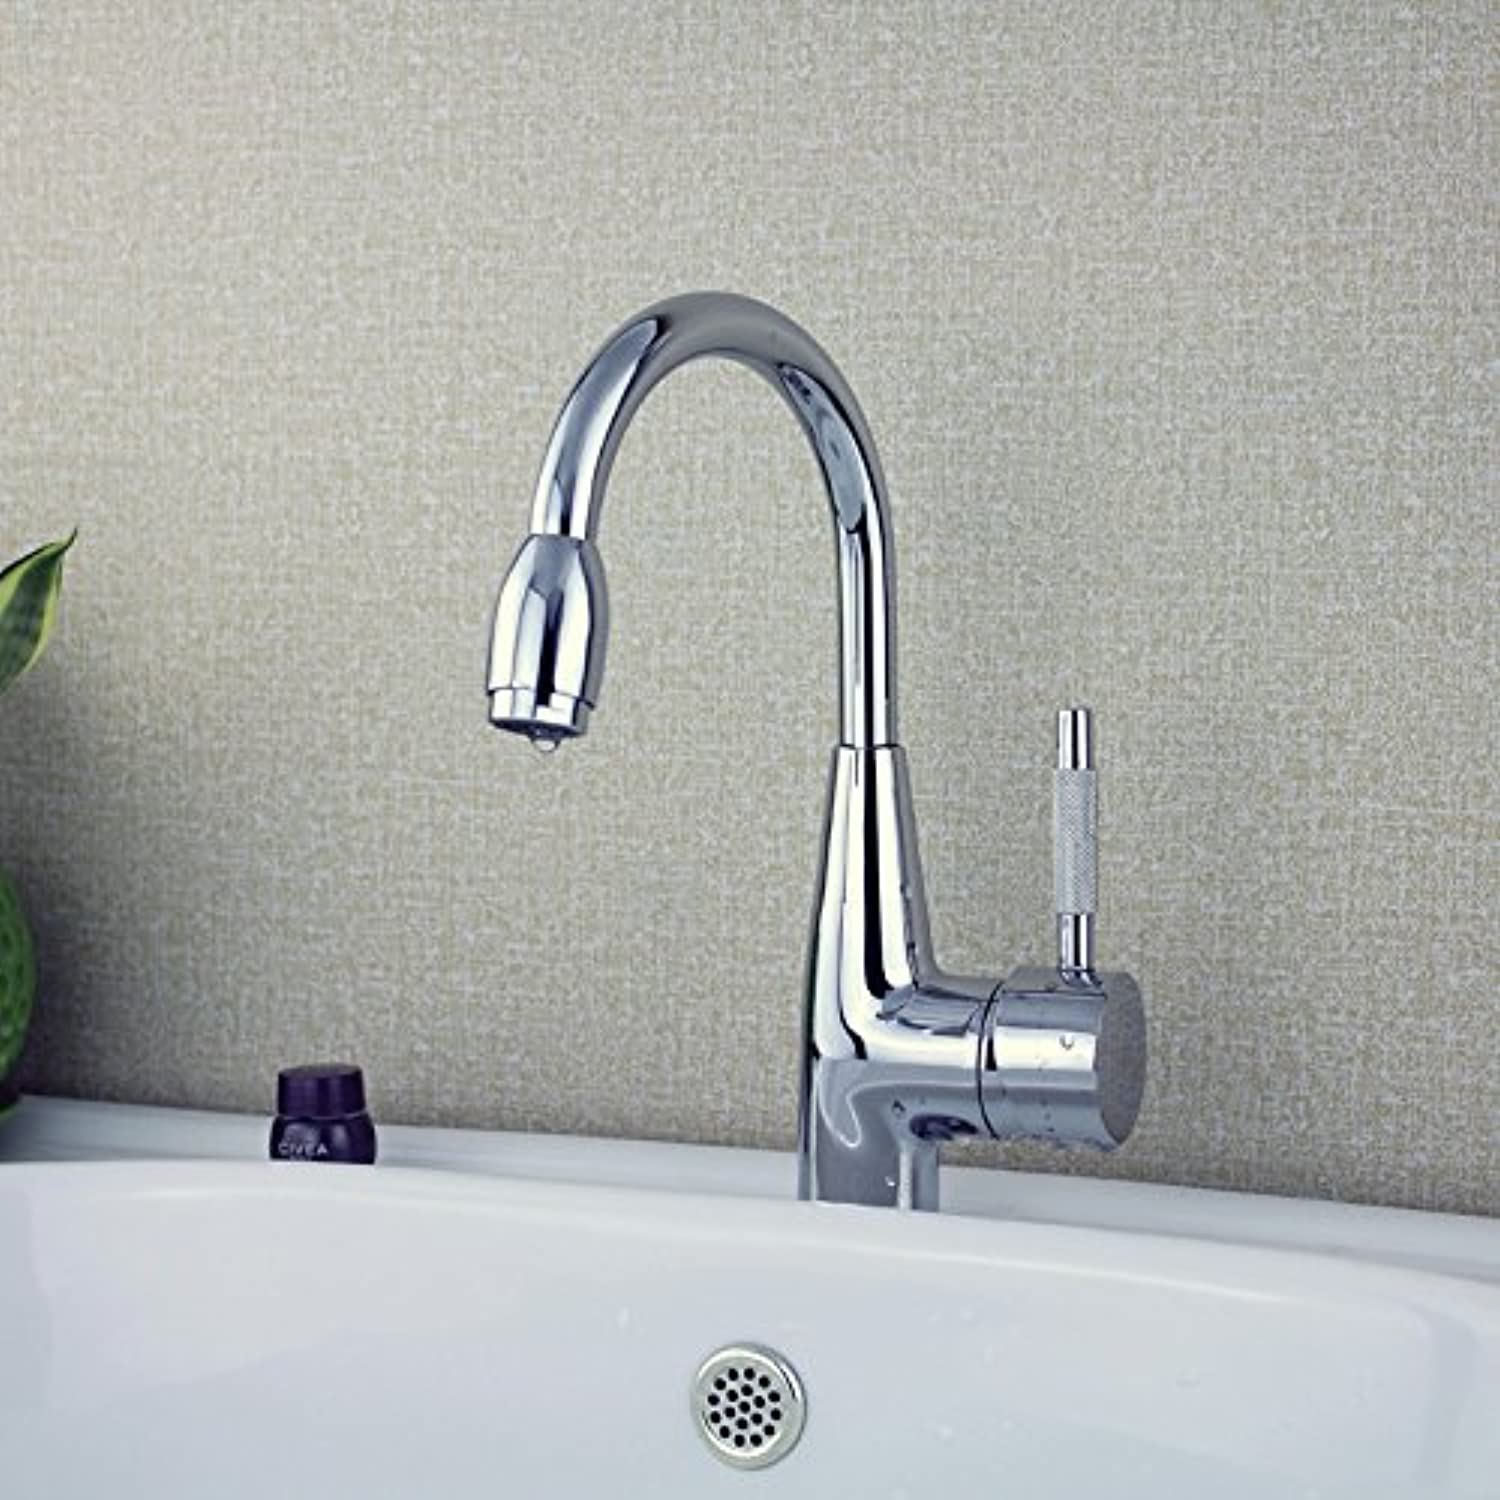 Moecd Face Basin Faucet Cold And Hot Single Hole Full Copper Body 360 Degree redating Platform On The Basin Faucet